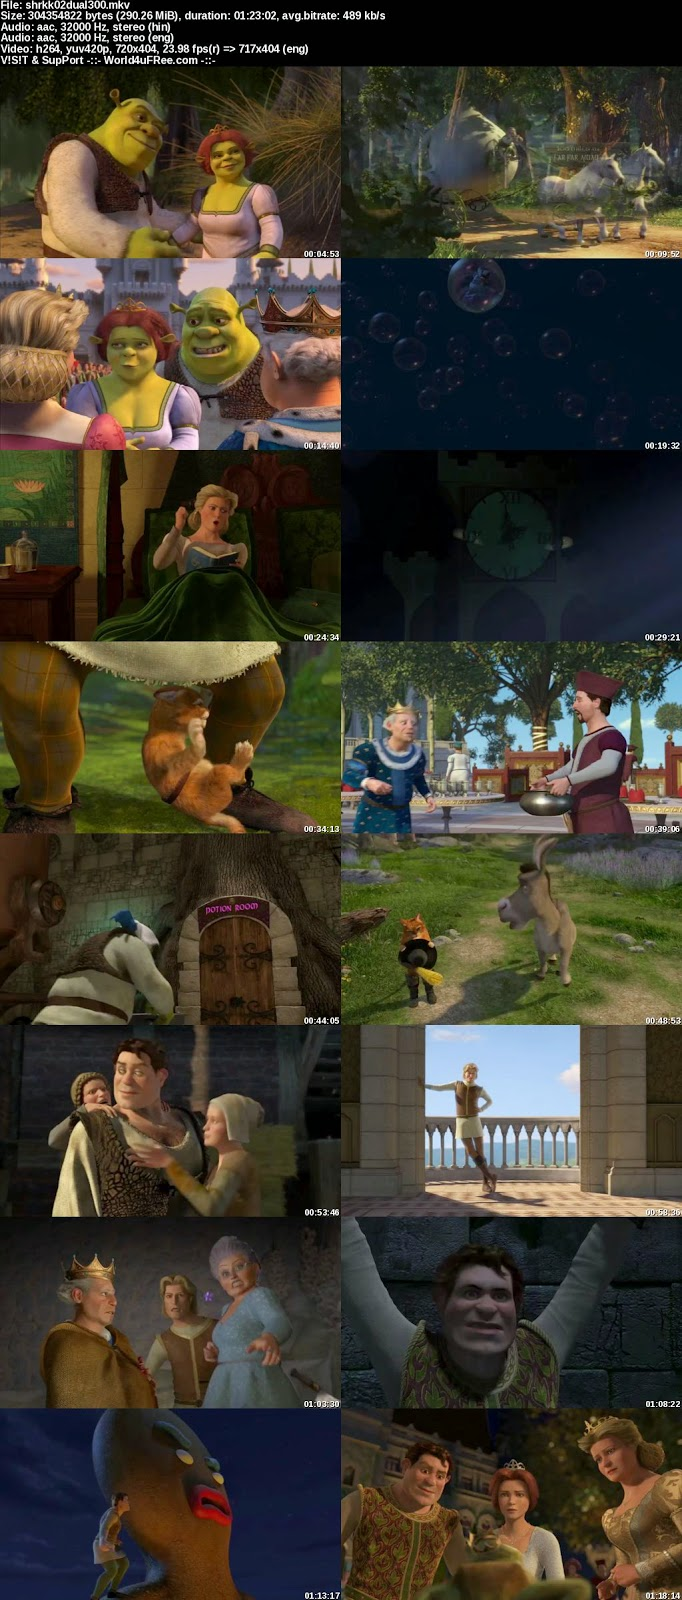 Video erotico shrek hentai scenes